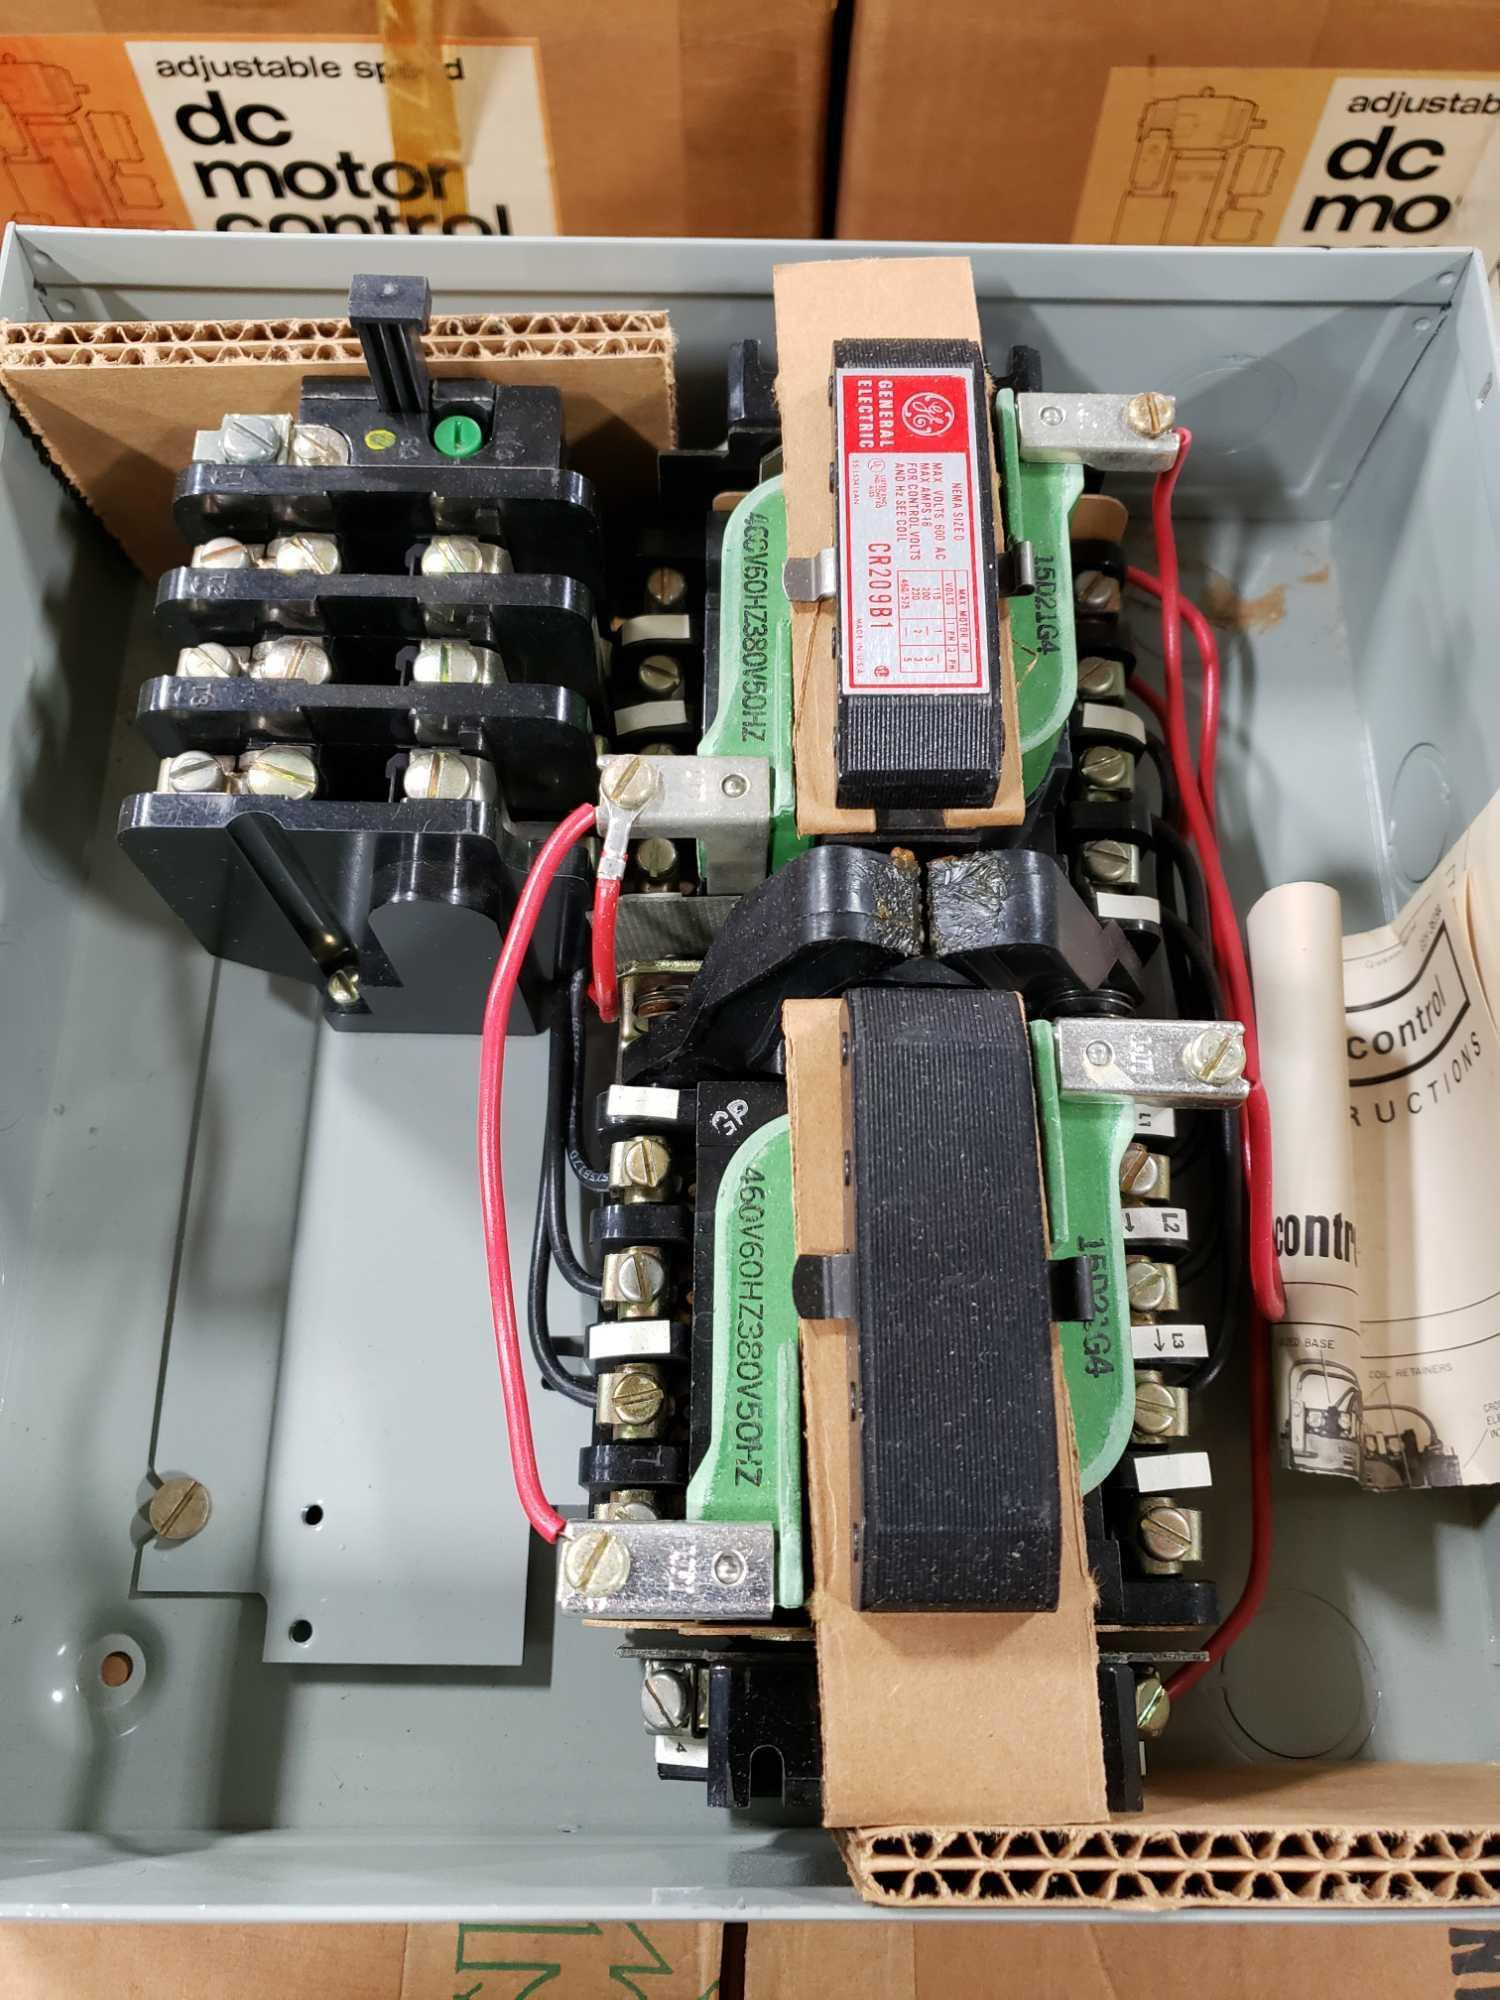 GE magnetic controller reversing contractor CR209B104 Nema size O, nema 1 enclosure. New in box. - Image 3 of 4